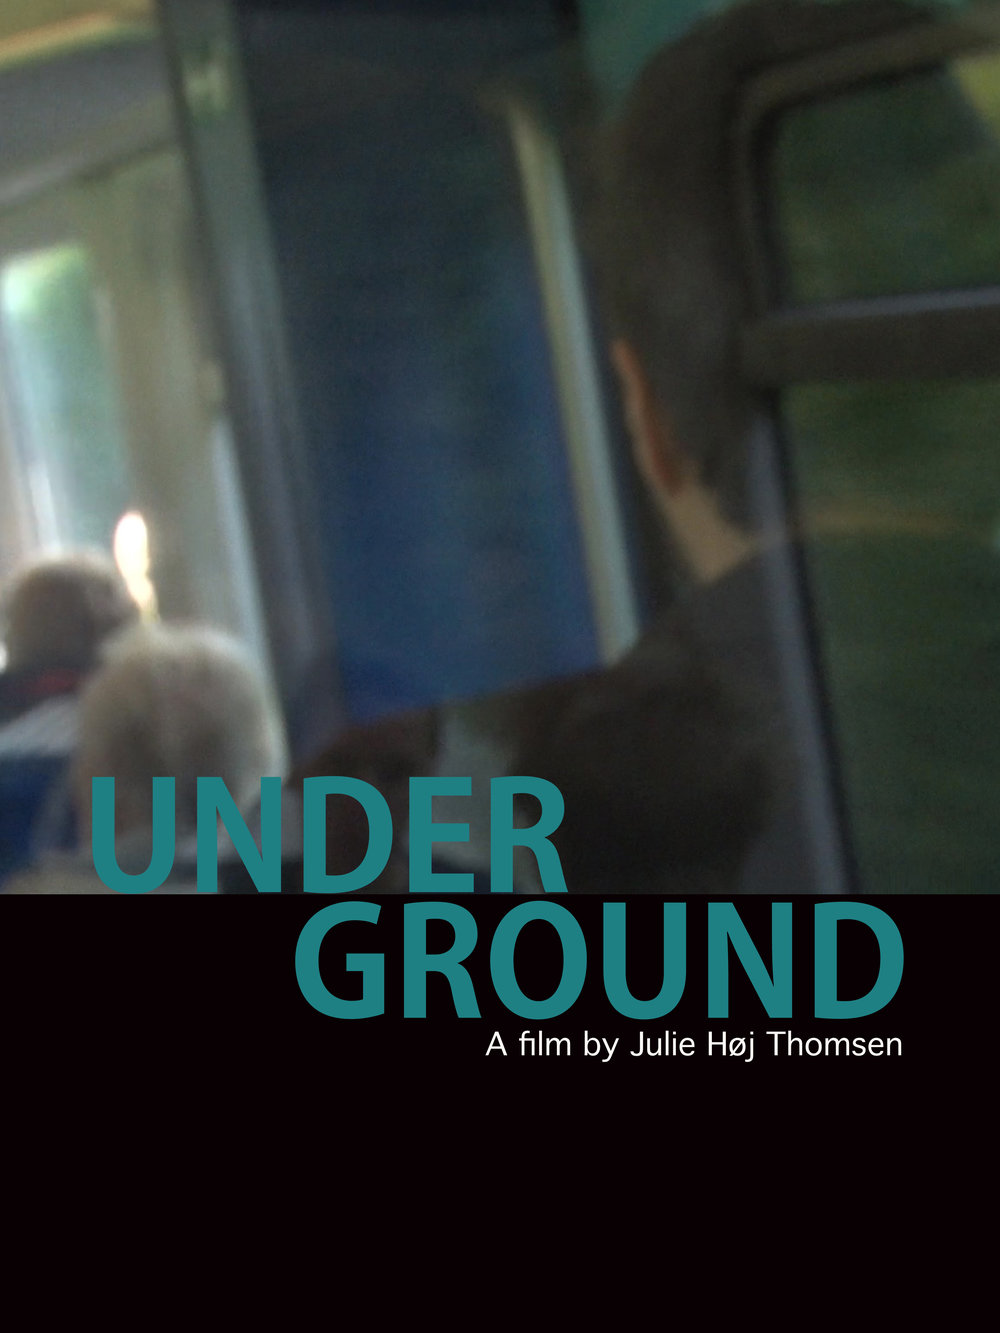 - UNDERGROUND, 2017 (Denmark) Ali travelled from Afghanistan to Denmark in 2011 to seek asylum, but after two and a half years his case was refused. Since then he has lived underground, and undocumented, in Copenhagen. 'Underground' explores Ali's experiences of living under the radar as a failed asylum seeker in Denmark. This quiet, intimate film considers how the conditions of 'rightlessness' and 'deportability' influence Ali's general experience of time, place, and belonging. Director: Julie Høj ThomsenLength: 22 minsWhere and when: Genesis Cinema, Sunday 3 December, 15:30 - screened alongside Between FencesPrice and tickets: £6.5-10; buy a ticket here.Q&A: Sue Clayton (Goldsmiths / filmmaker), member of New Arts Studio (art therapy with refugees), Federica Mazzara (University of Westminster)